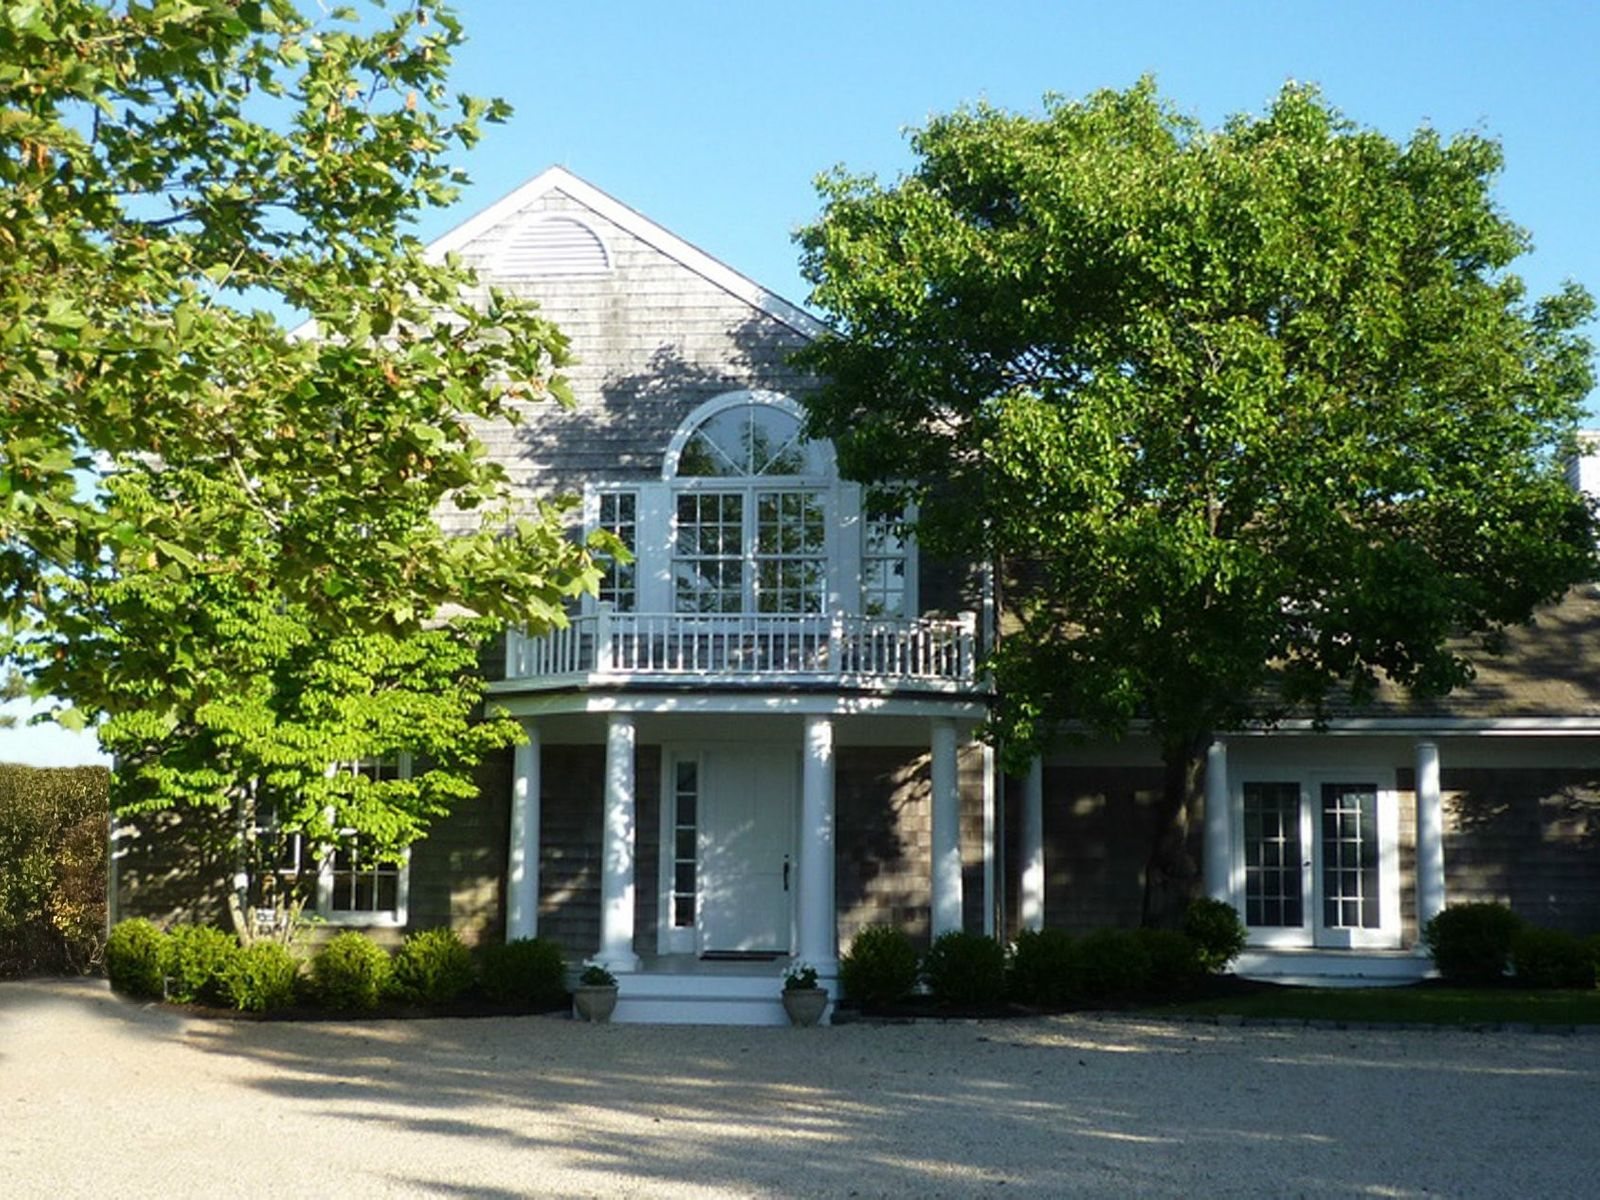 Mecox Bay Access Decorator's Own, Water Mill NY Single Family Home - Hamptons Real Estate